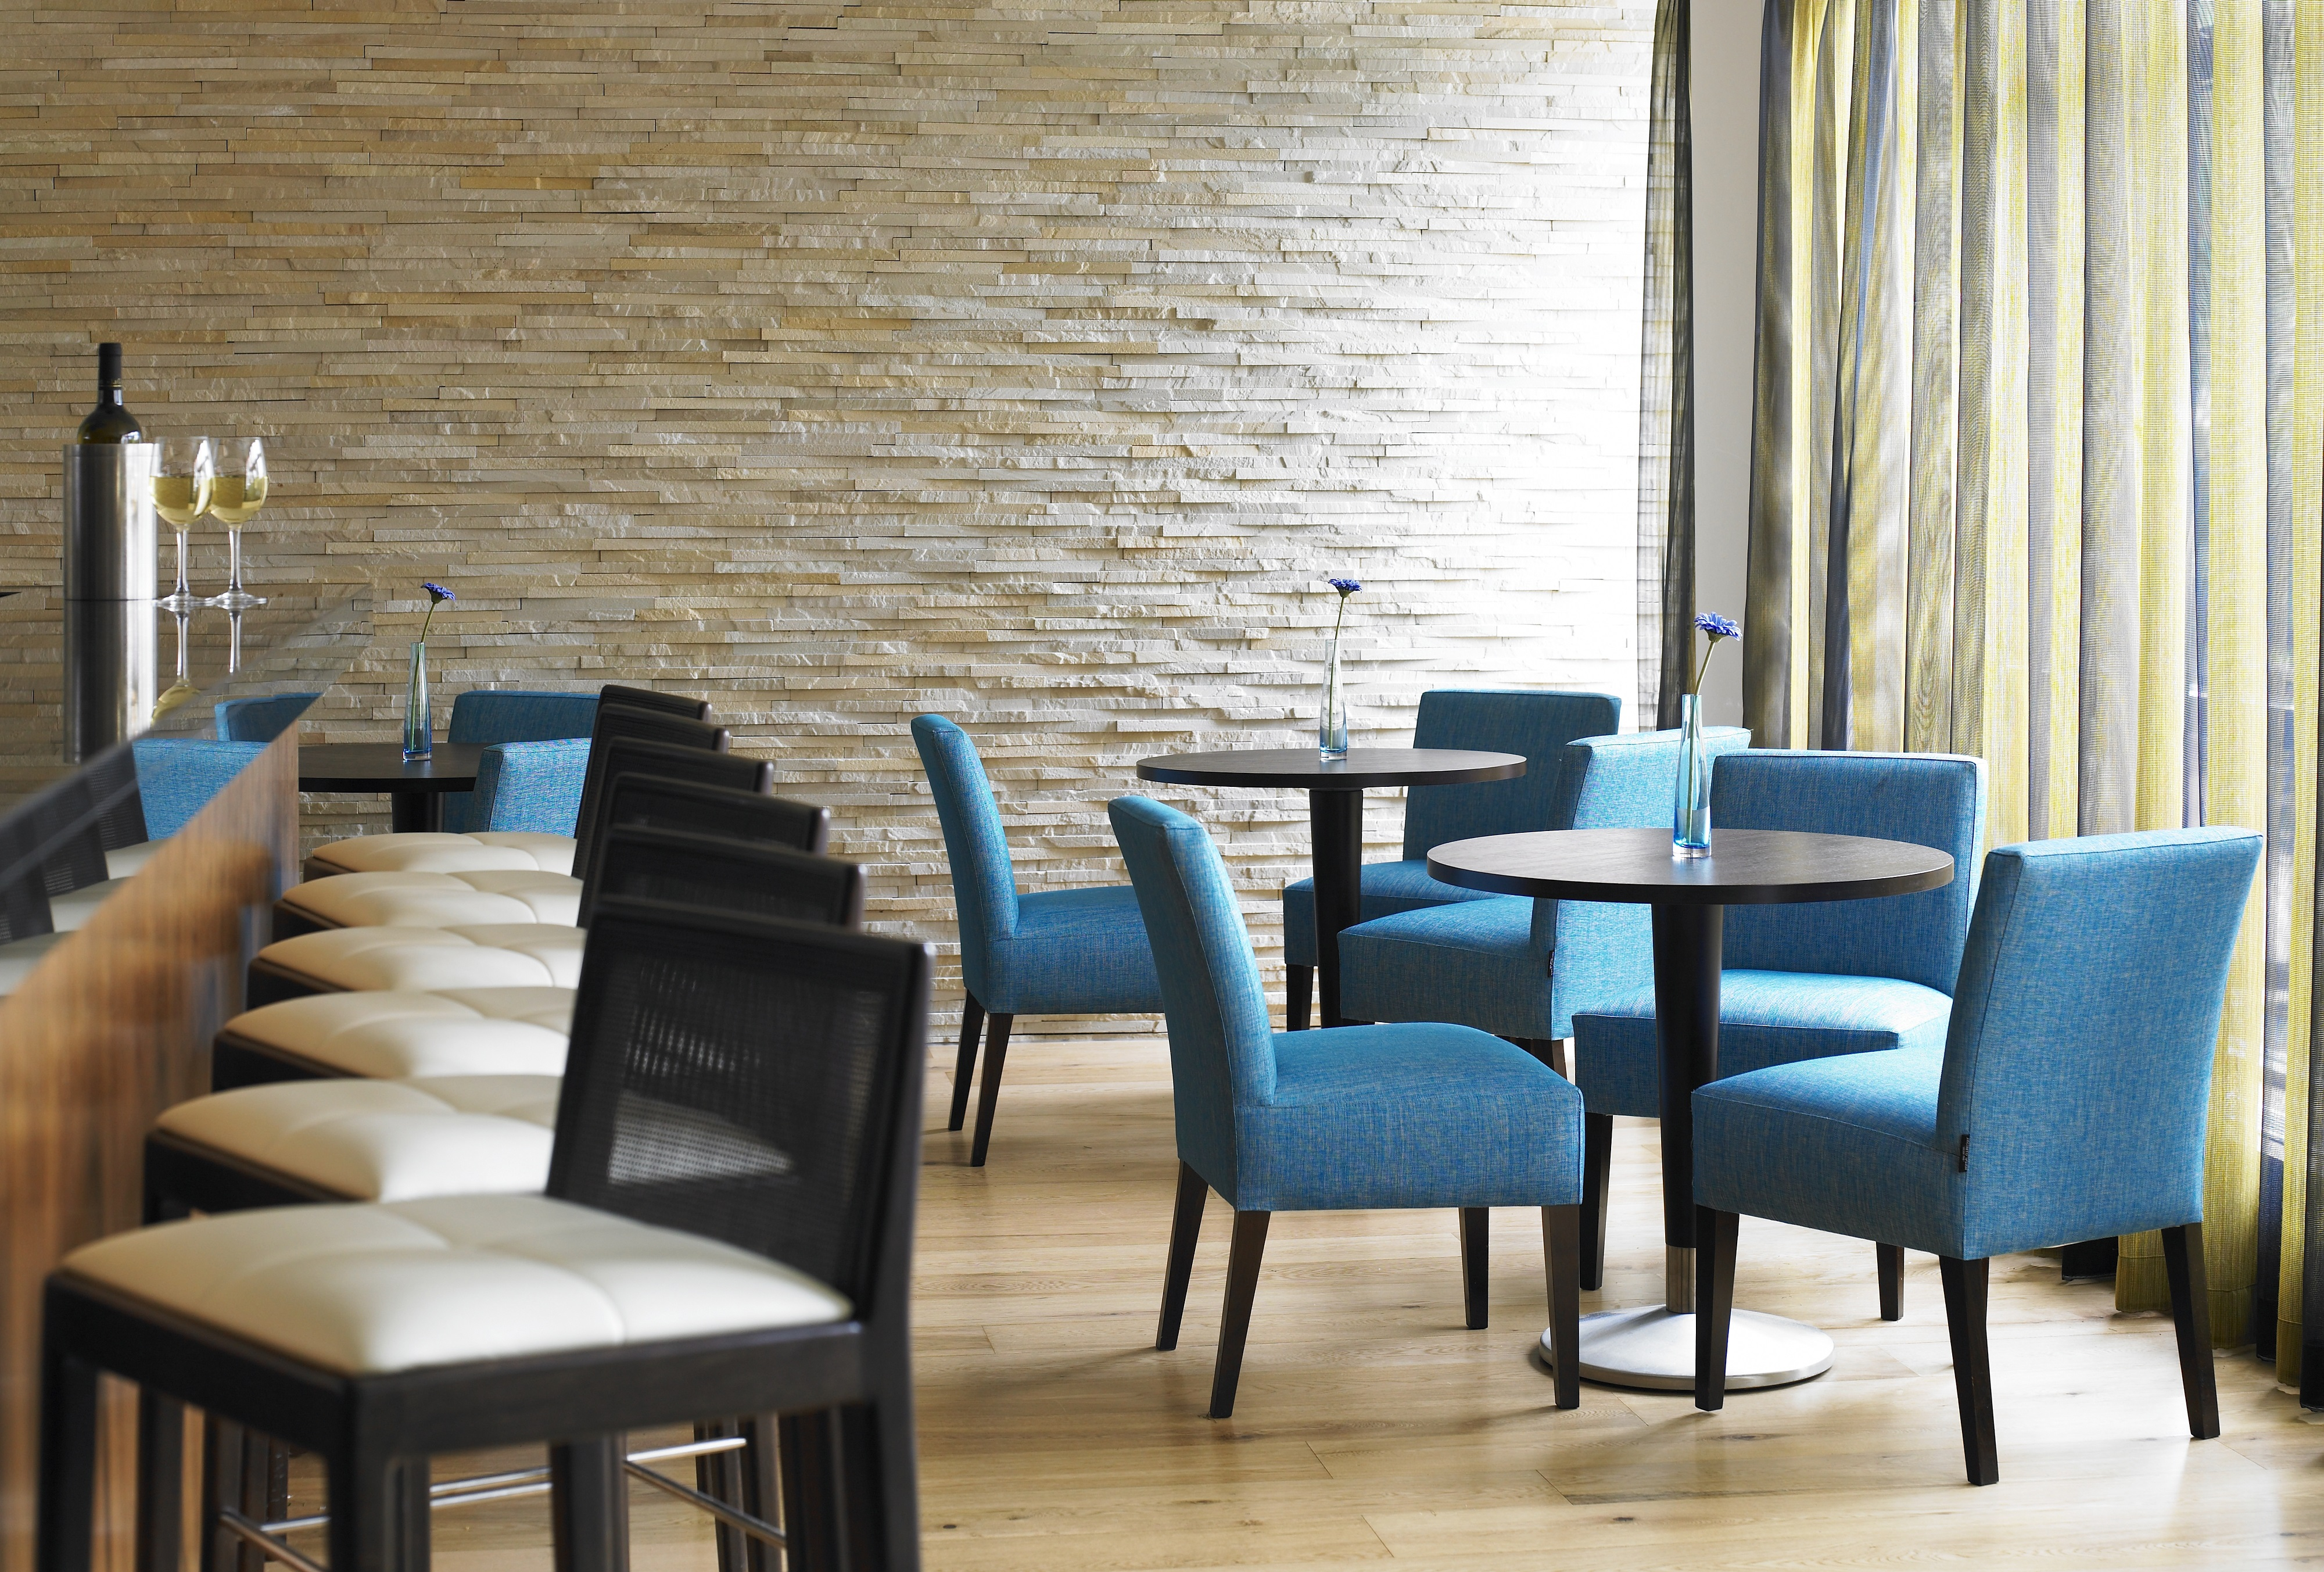 Broadstreet Restaurant and Bar at Marriott Meon Valley - Hampshire